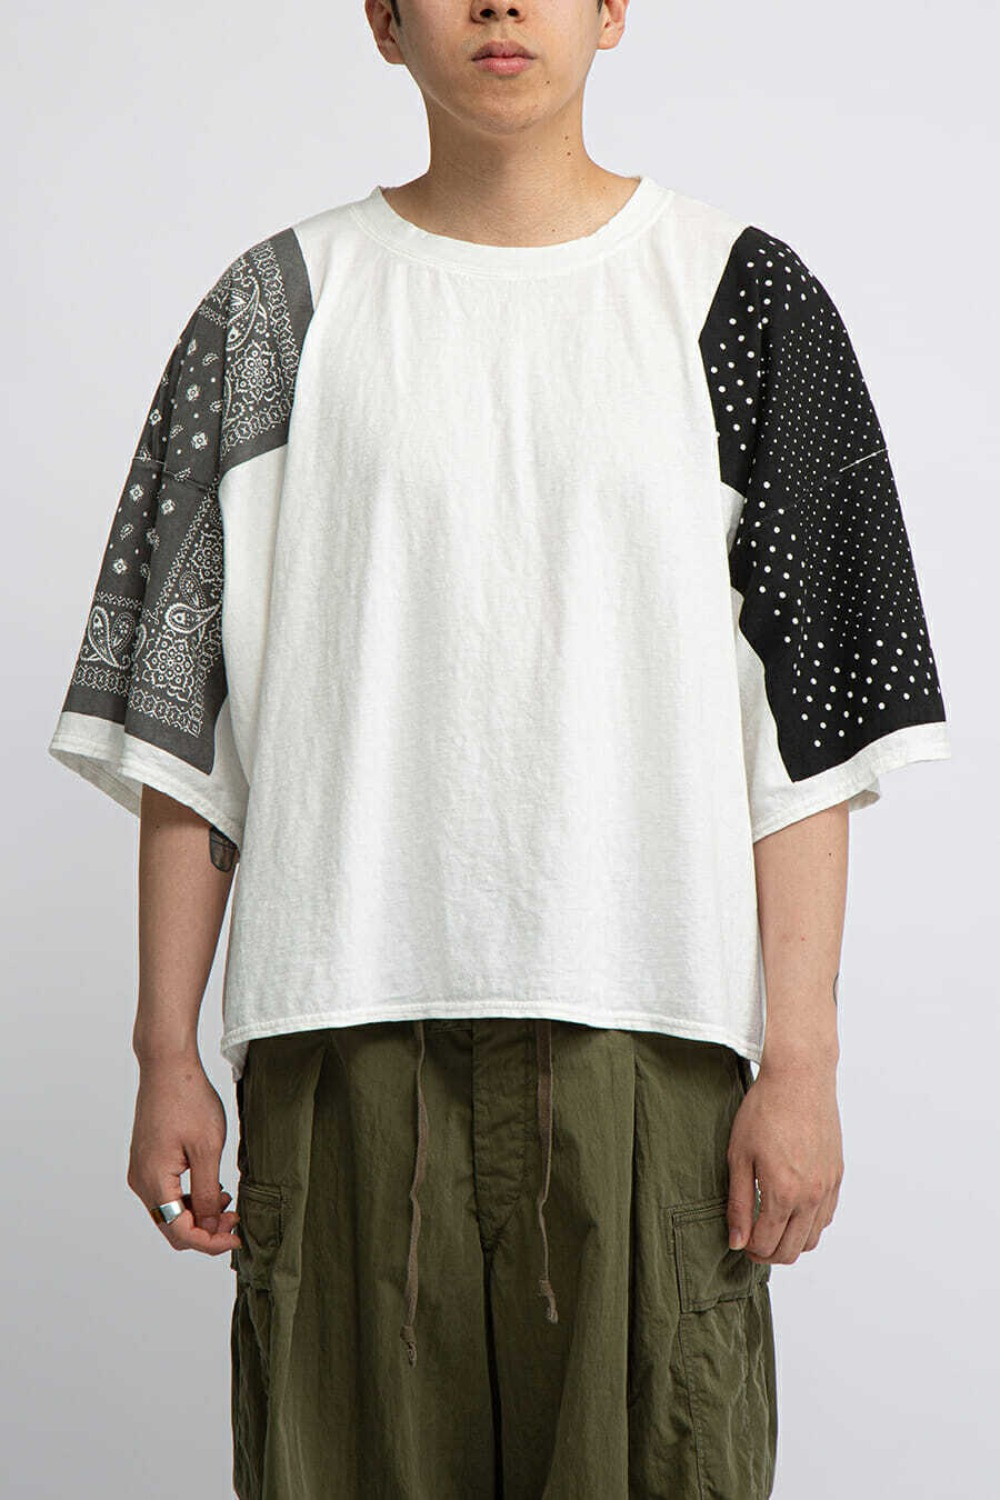 JERSEY BANDANA HUGE T(EK-616) BLACK